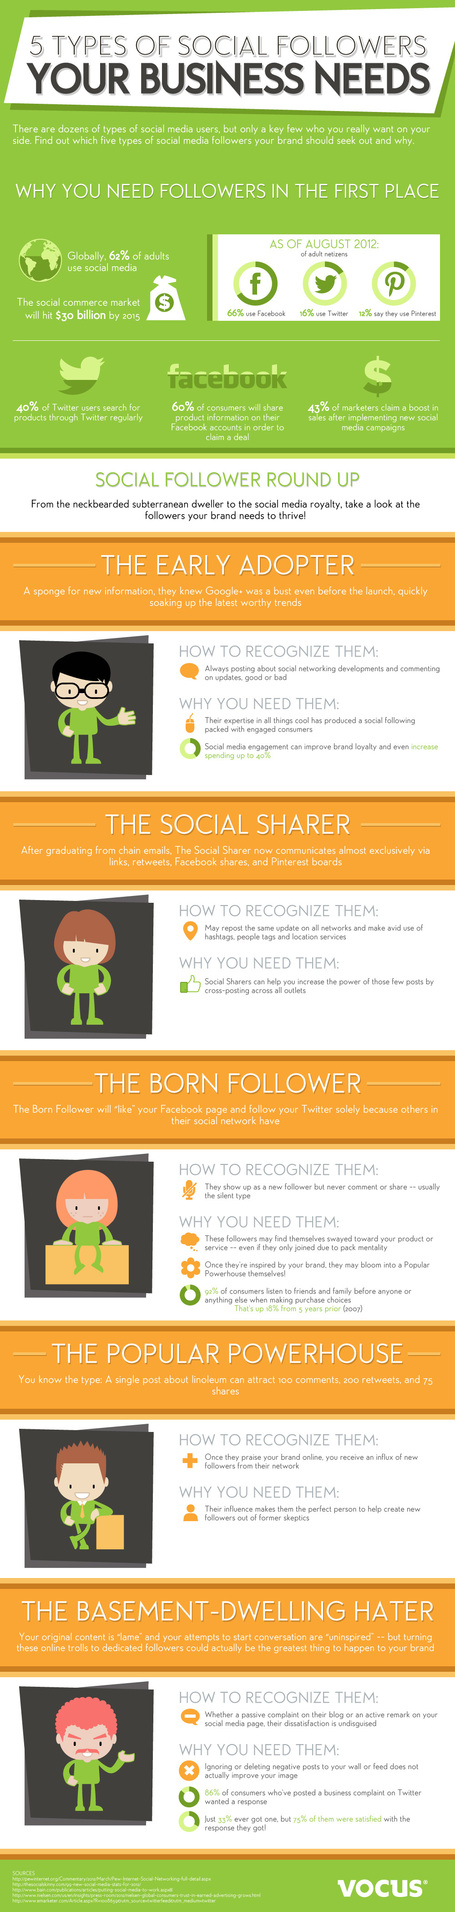 The 5 Types of Social Followers that Every Business Needs [INFOGRAPHIC] | WEBOLUTION! | Scoop.it